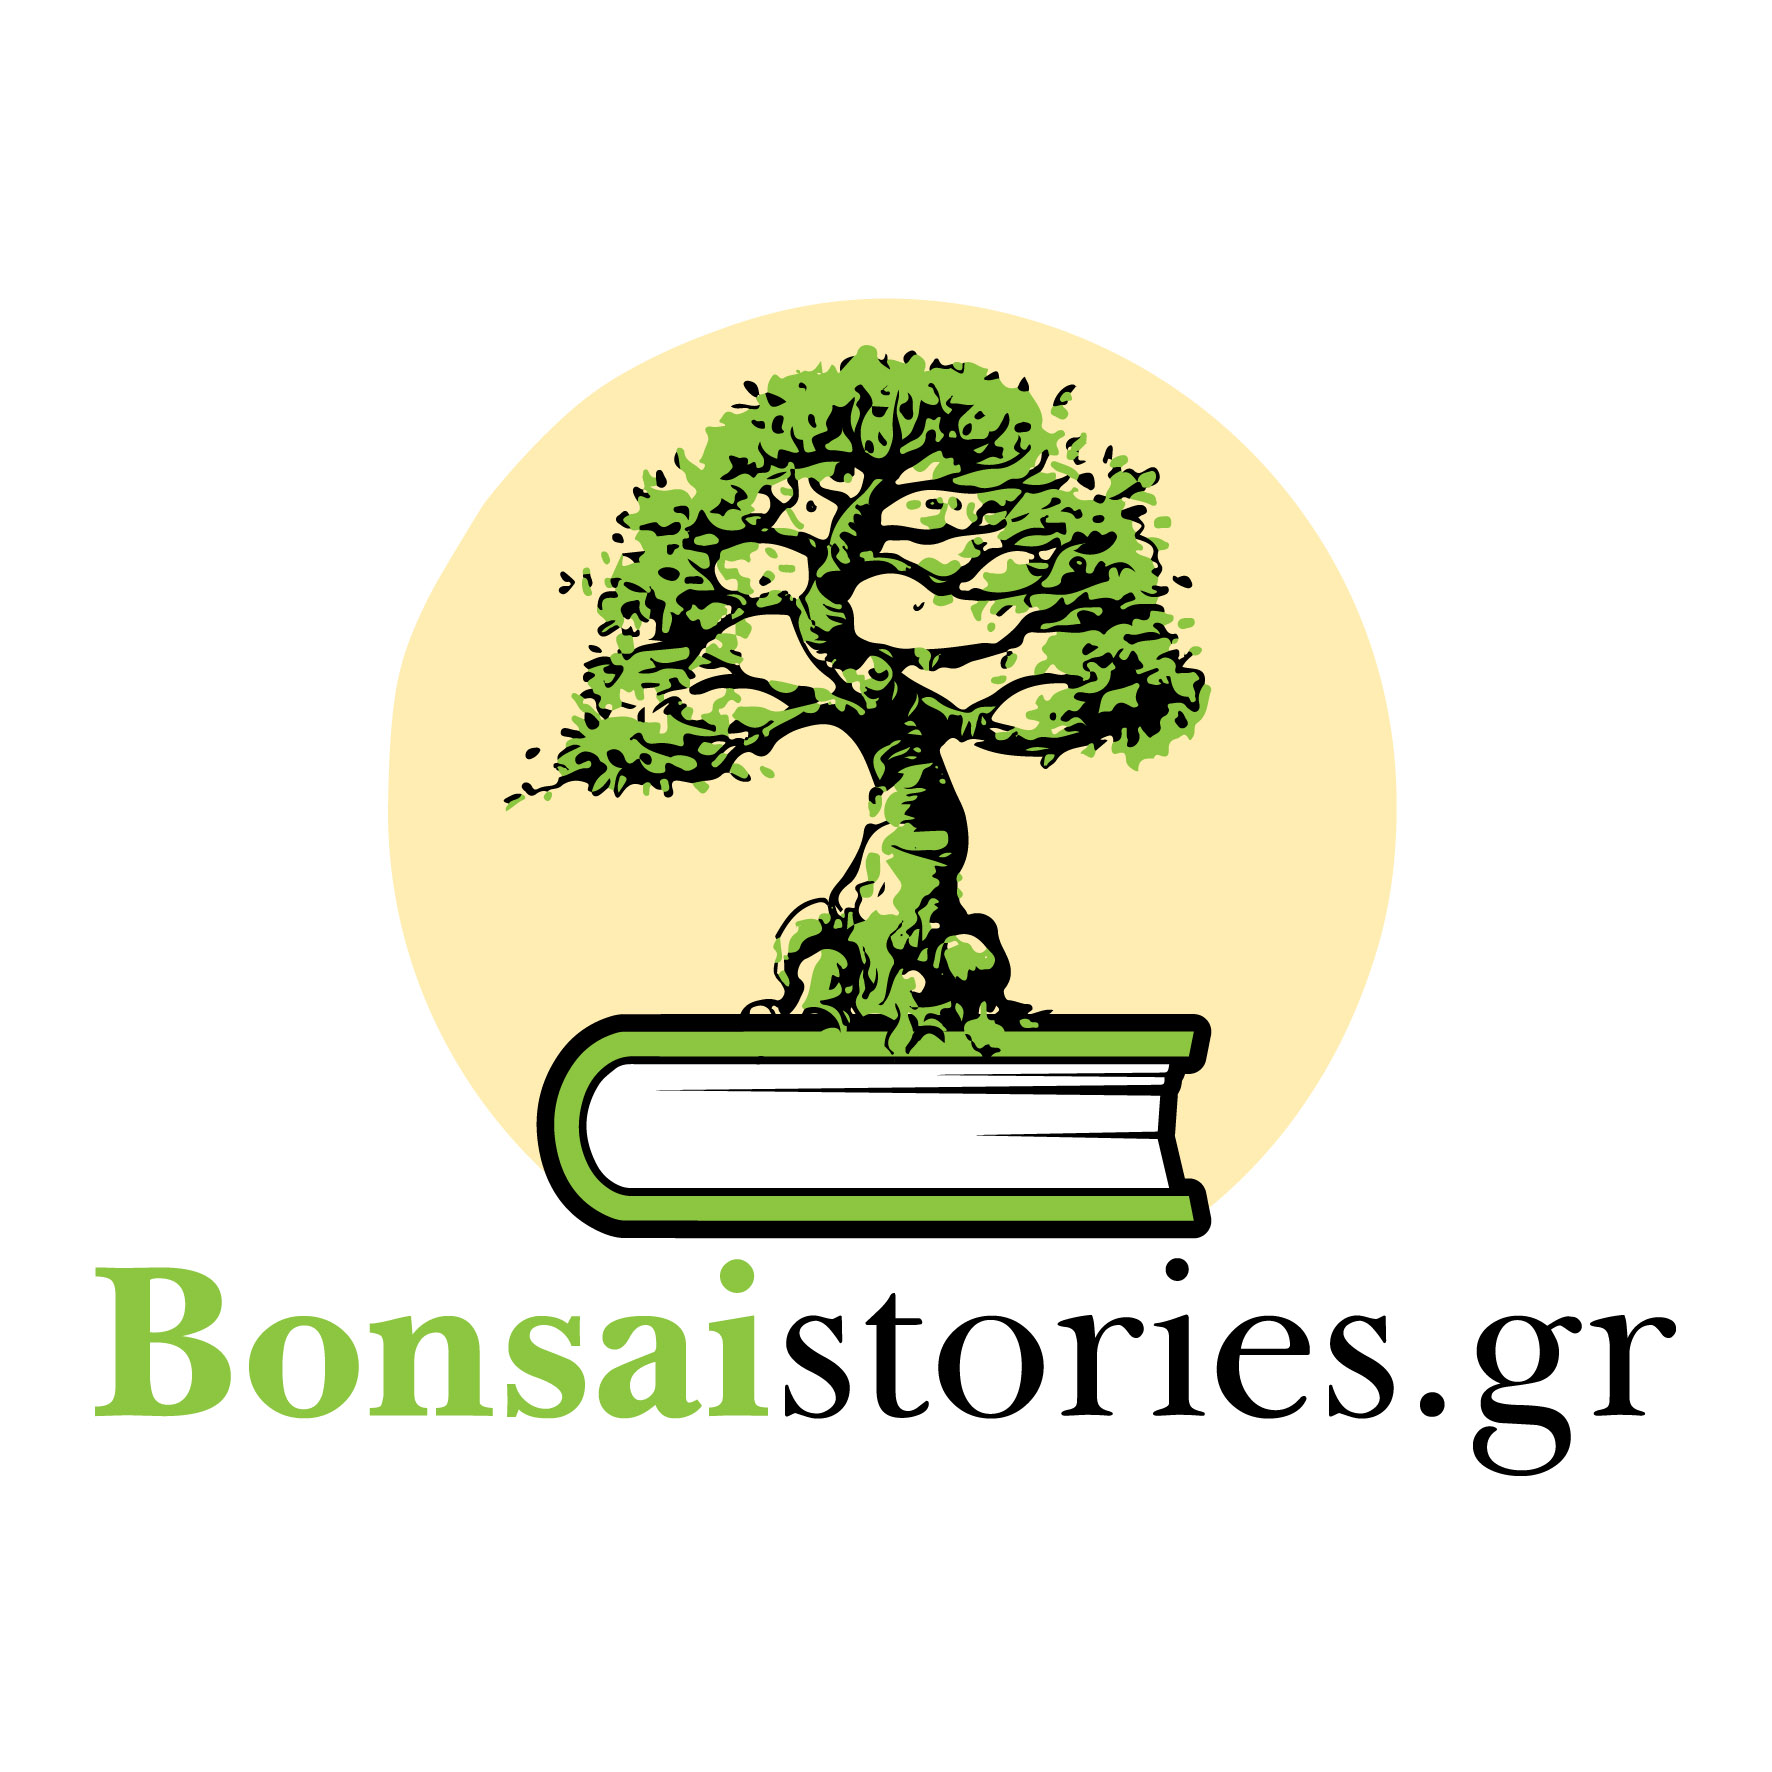 Bonsai Stories